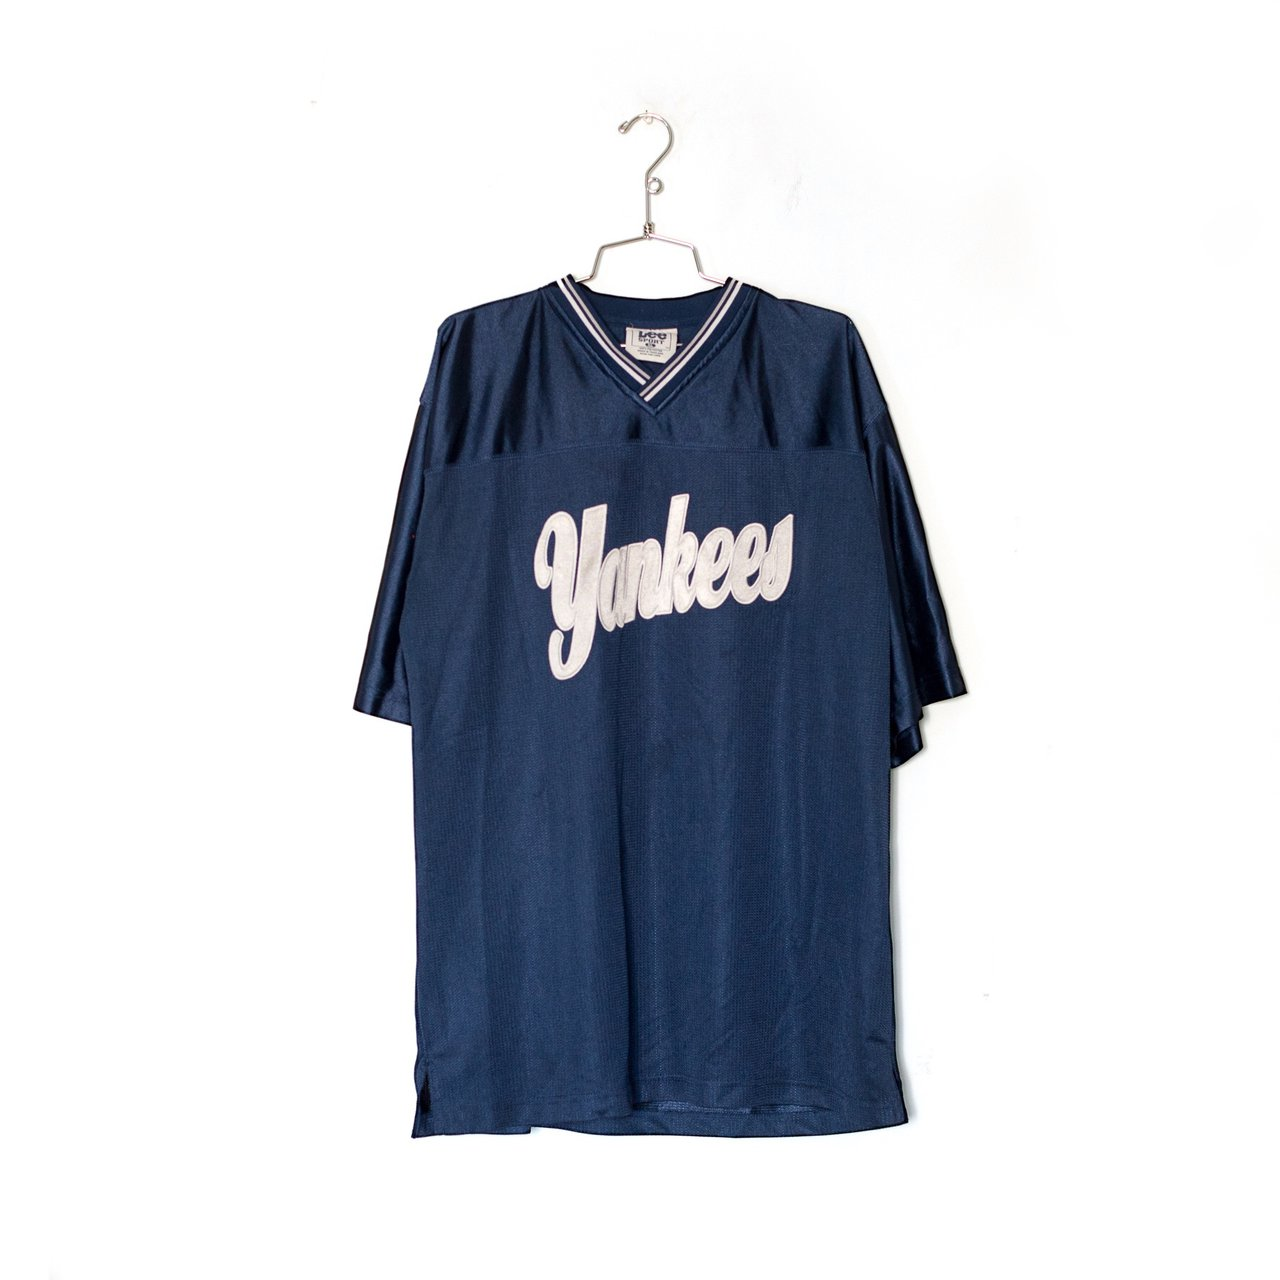 Vintage Yankees Jersey Measurements (approximate) Pit to to - Depop 101cbfa4664